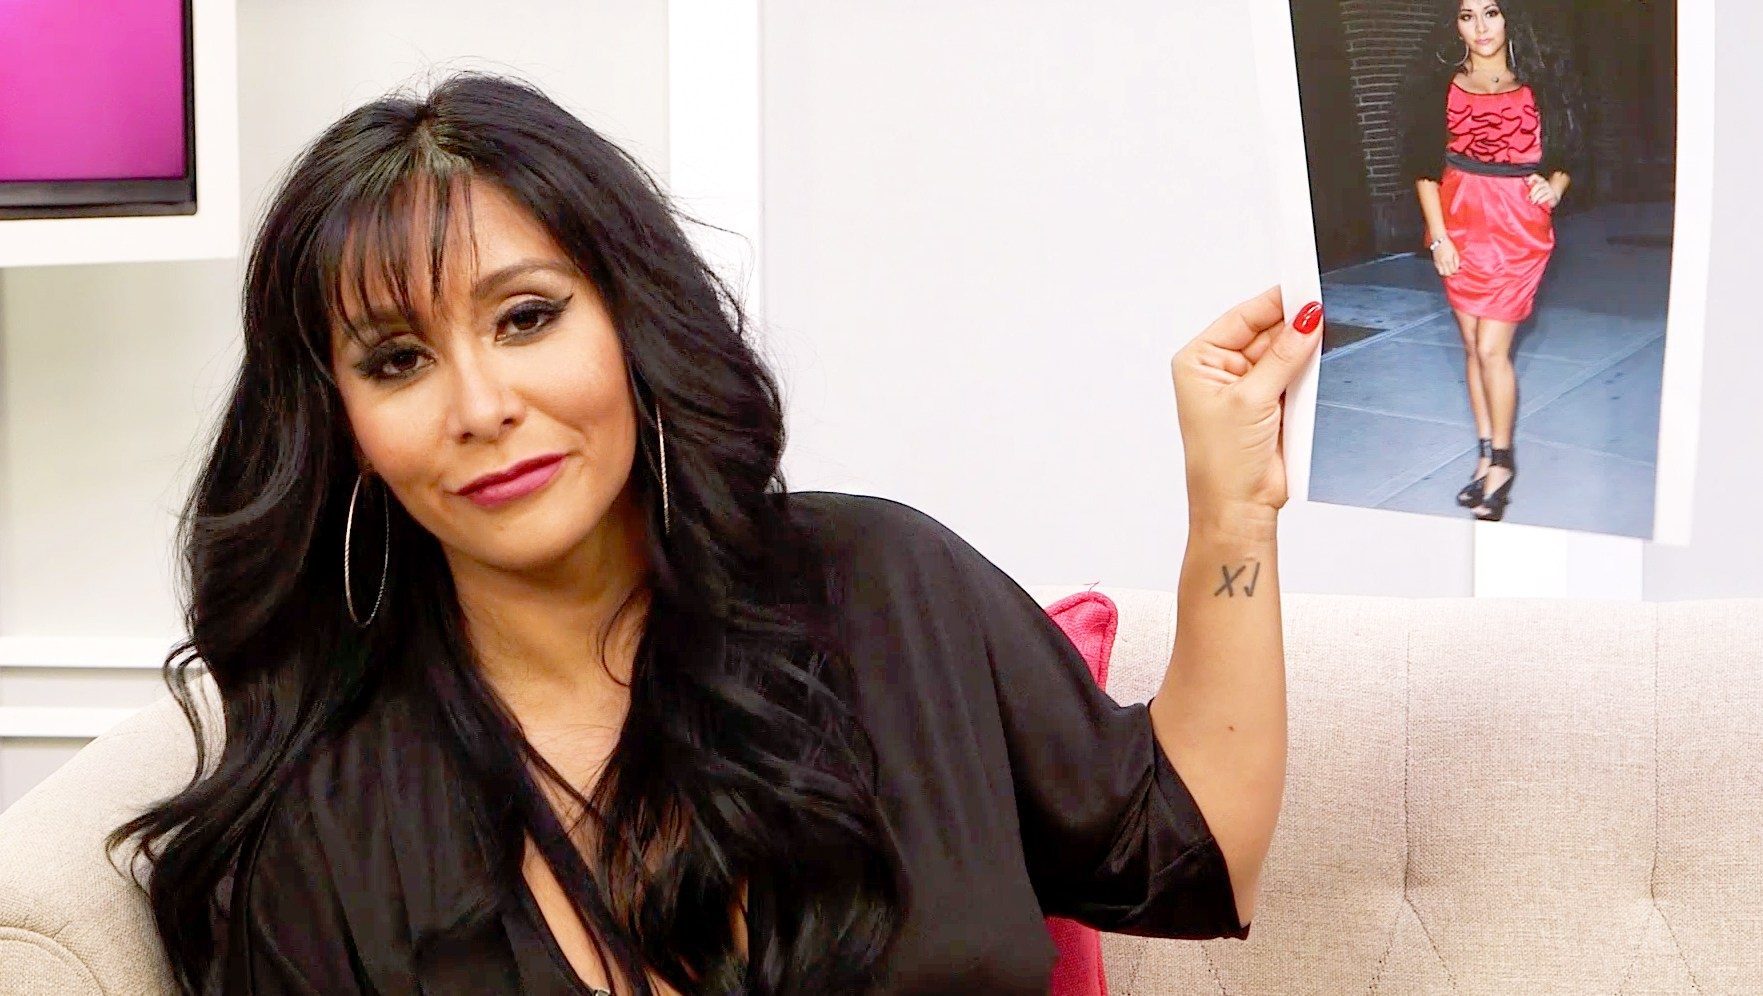 'Jersey Shore' star Snooki